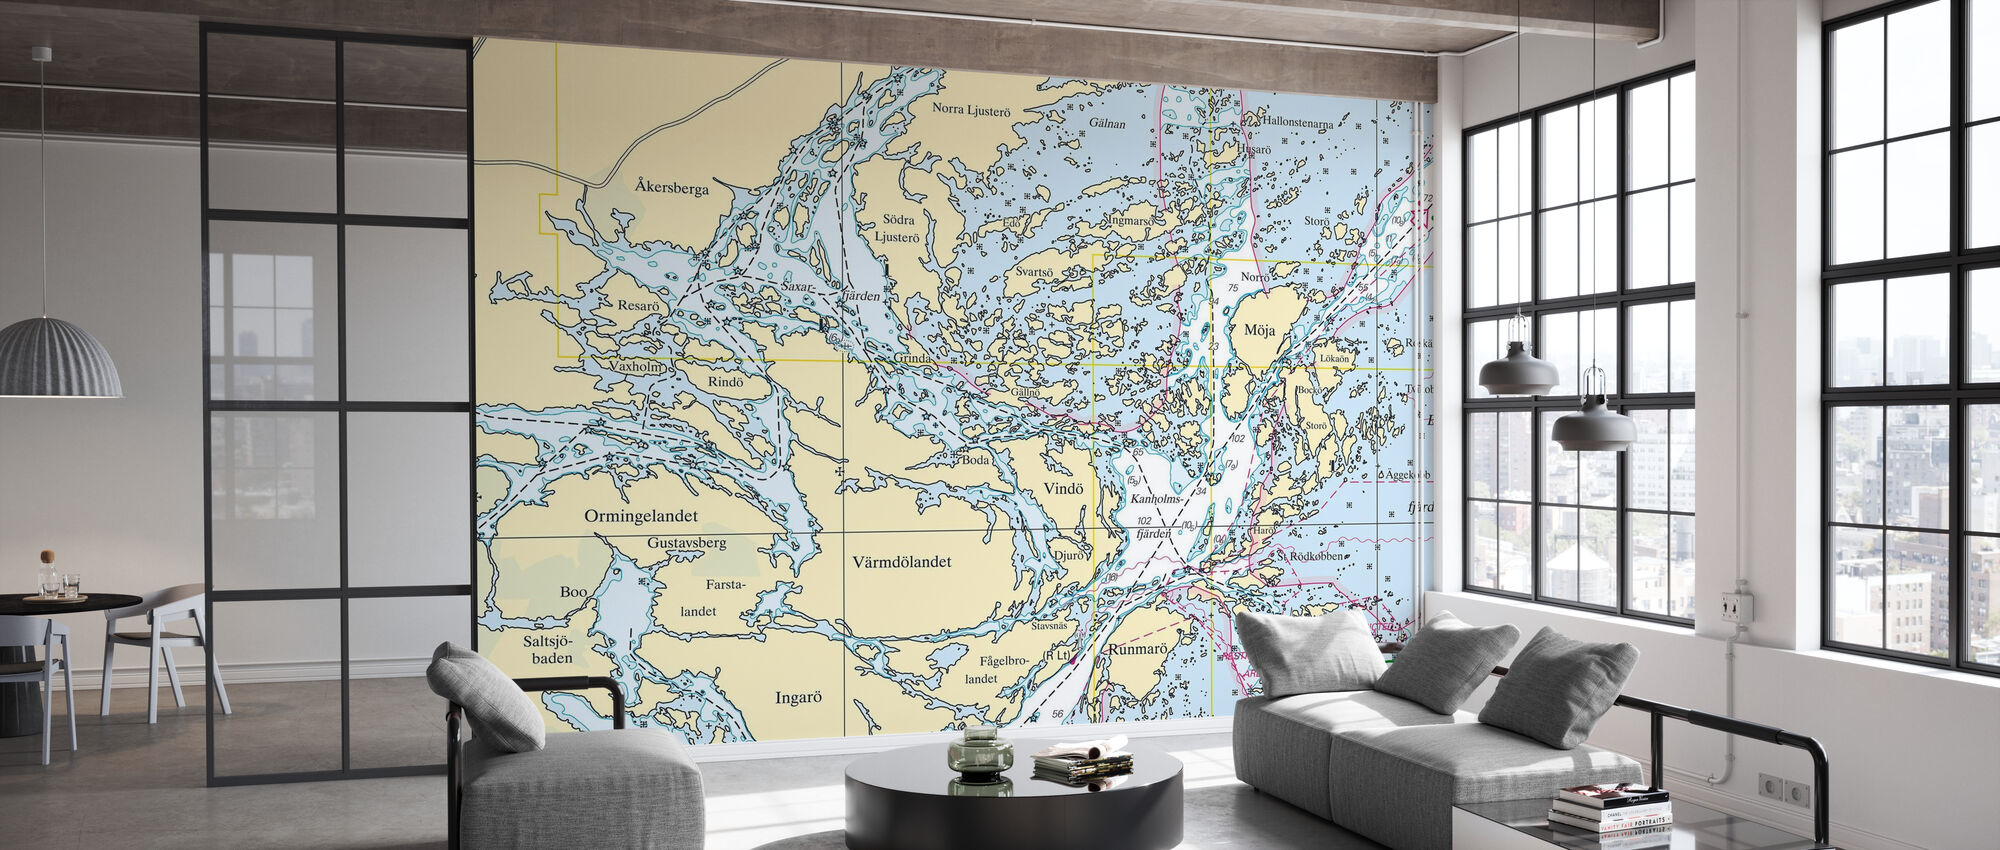 Middle Archipelago - Wallpaper - Office